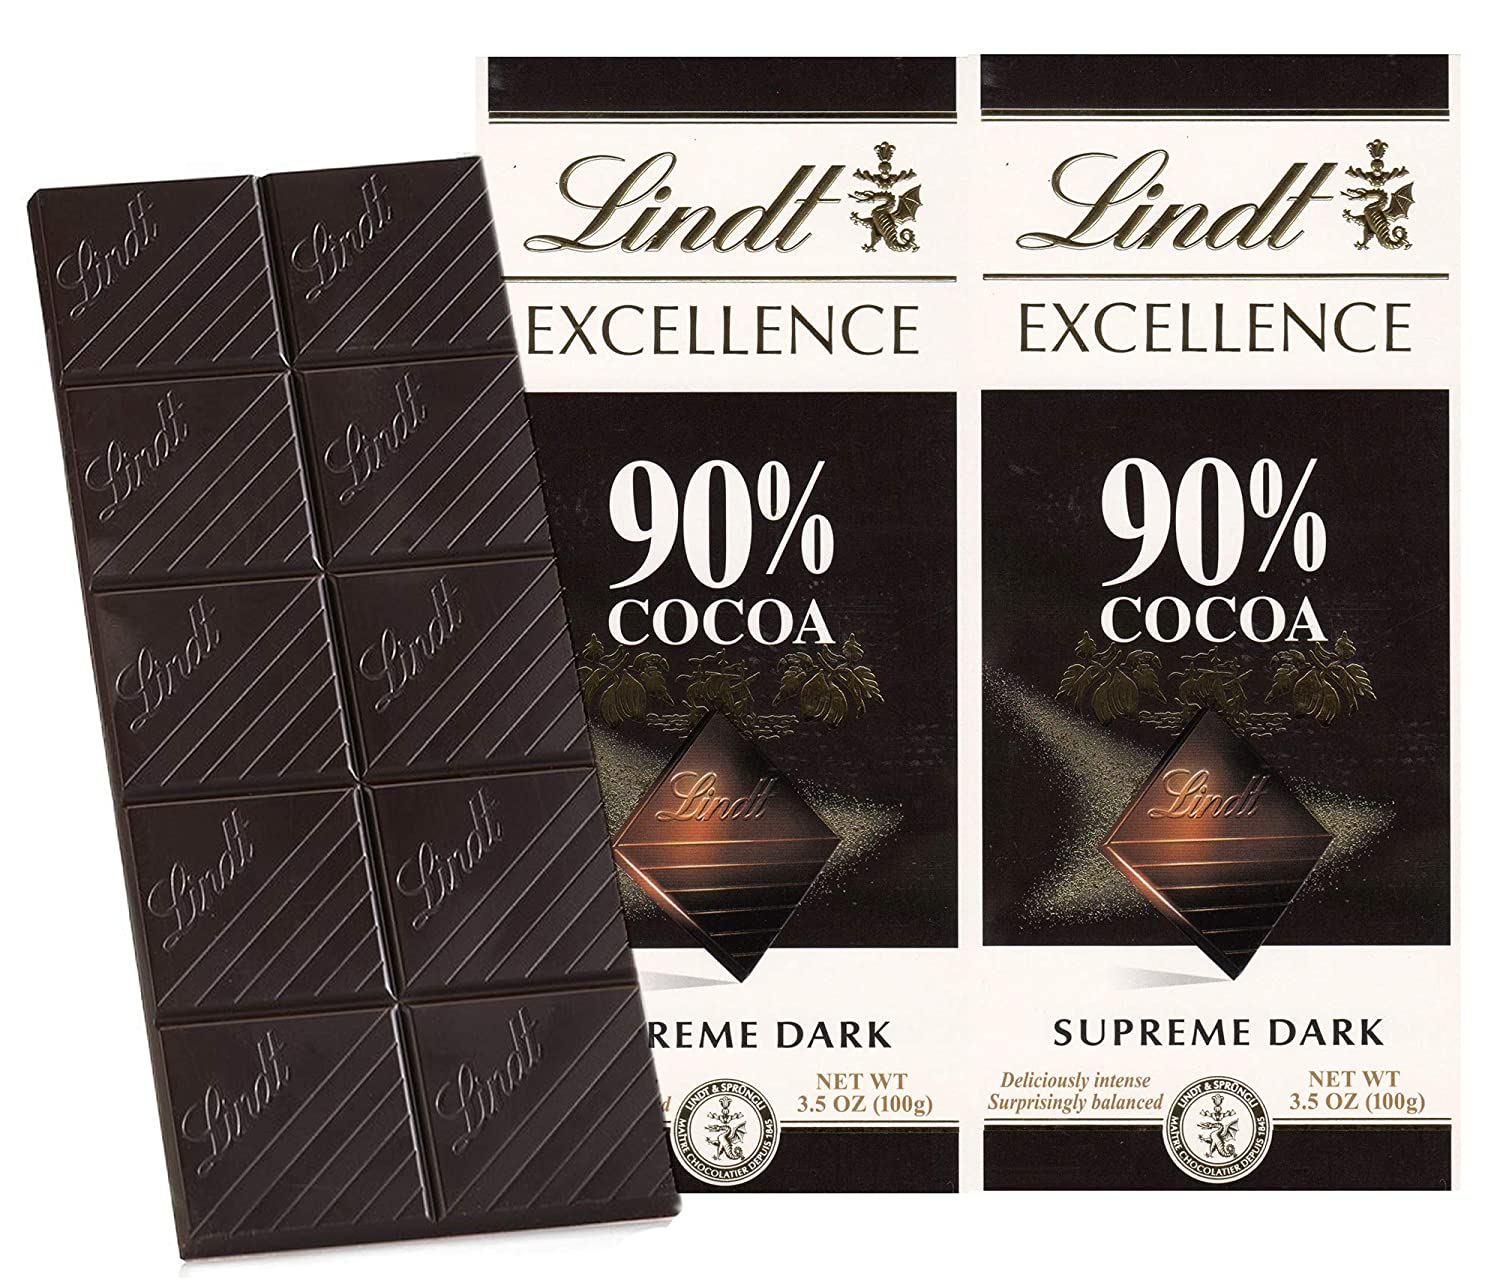 Lindt Excellence 90% Cocoa Dark Supreme Noir Chocolate Bar, 2 X 100 g